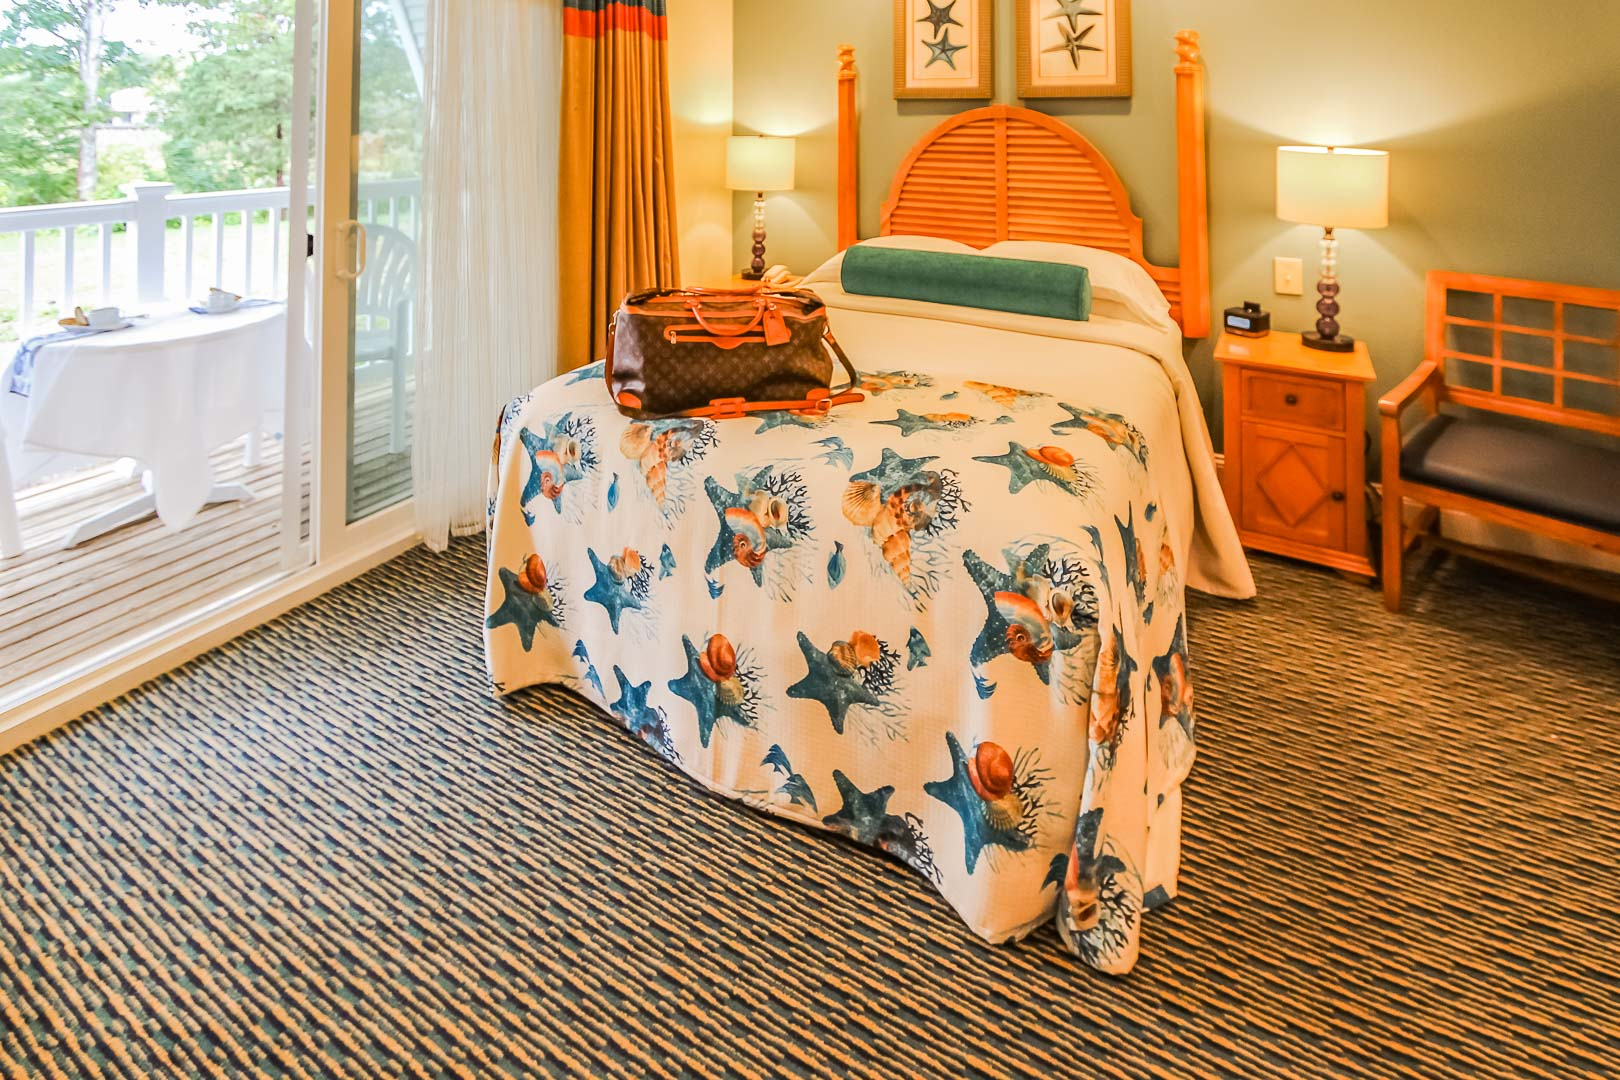 A vibrant bedroom at VRI's The Cove at Yarmouth in Massachusetts.